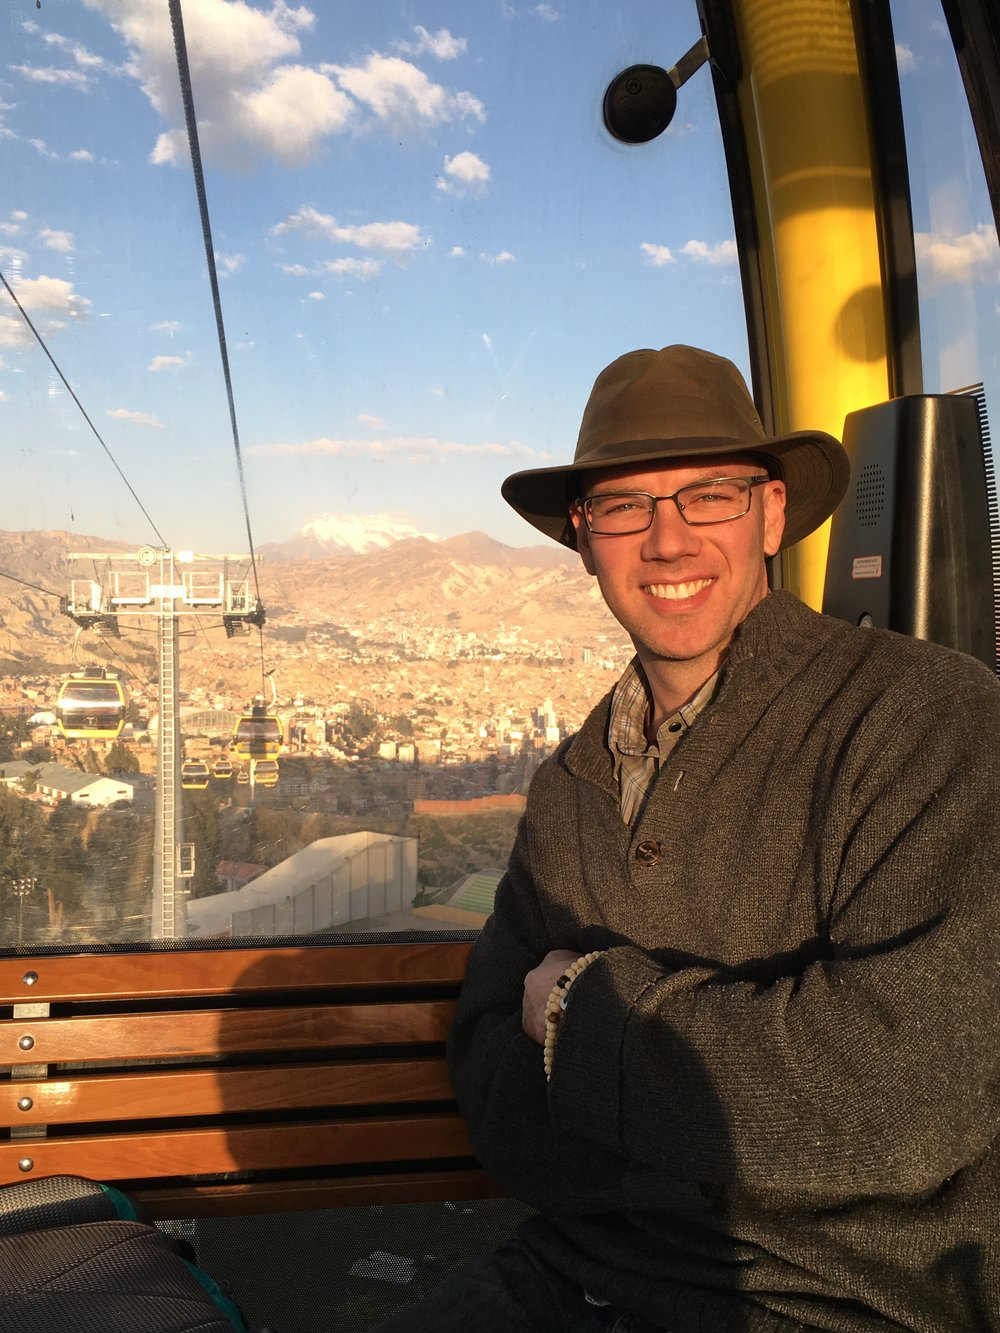 Ōshin smiling wearing a wide brim hat and sweater, riding the teleferico with Mount Illimani behind him.